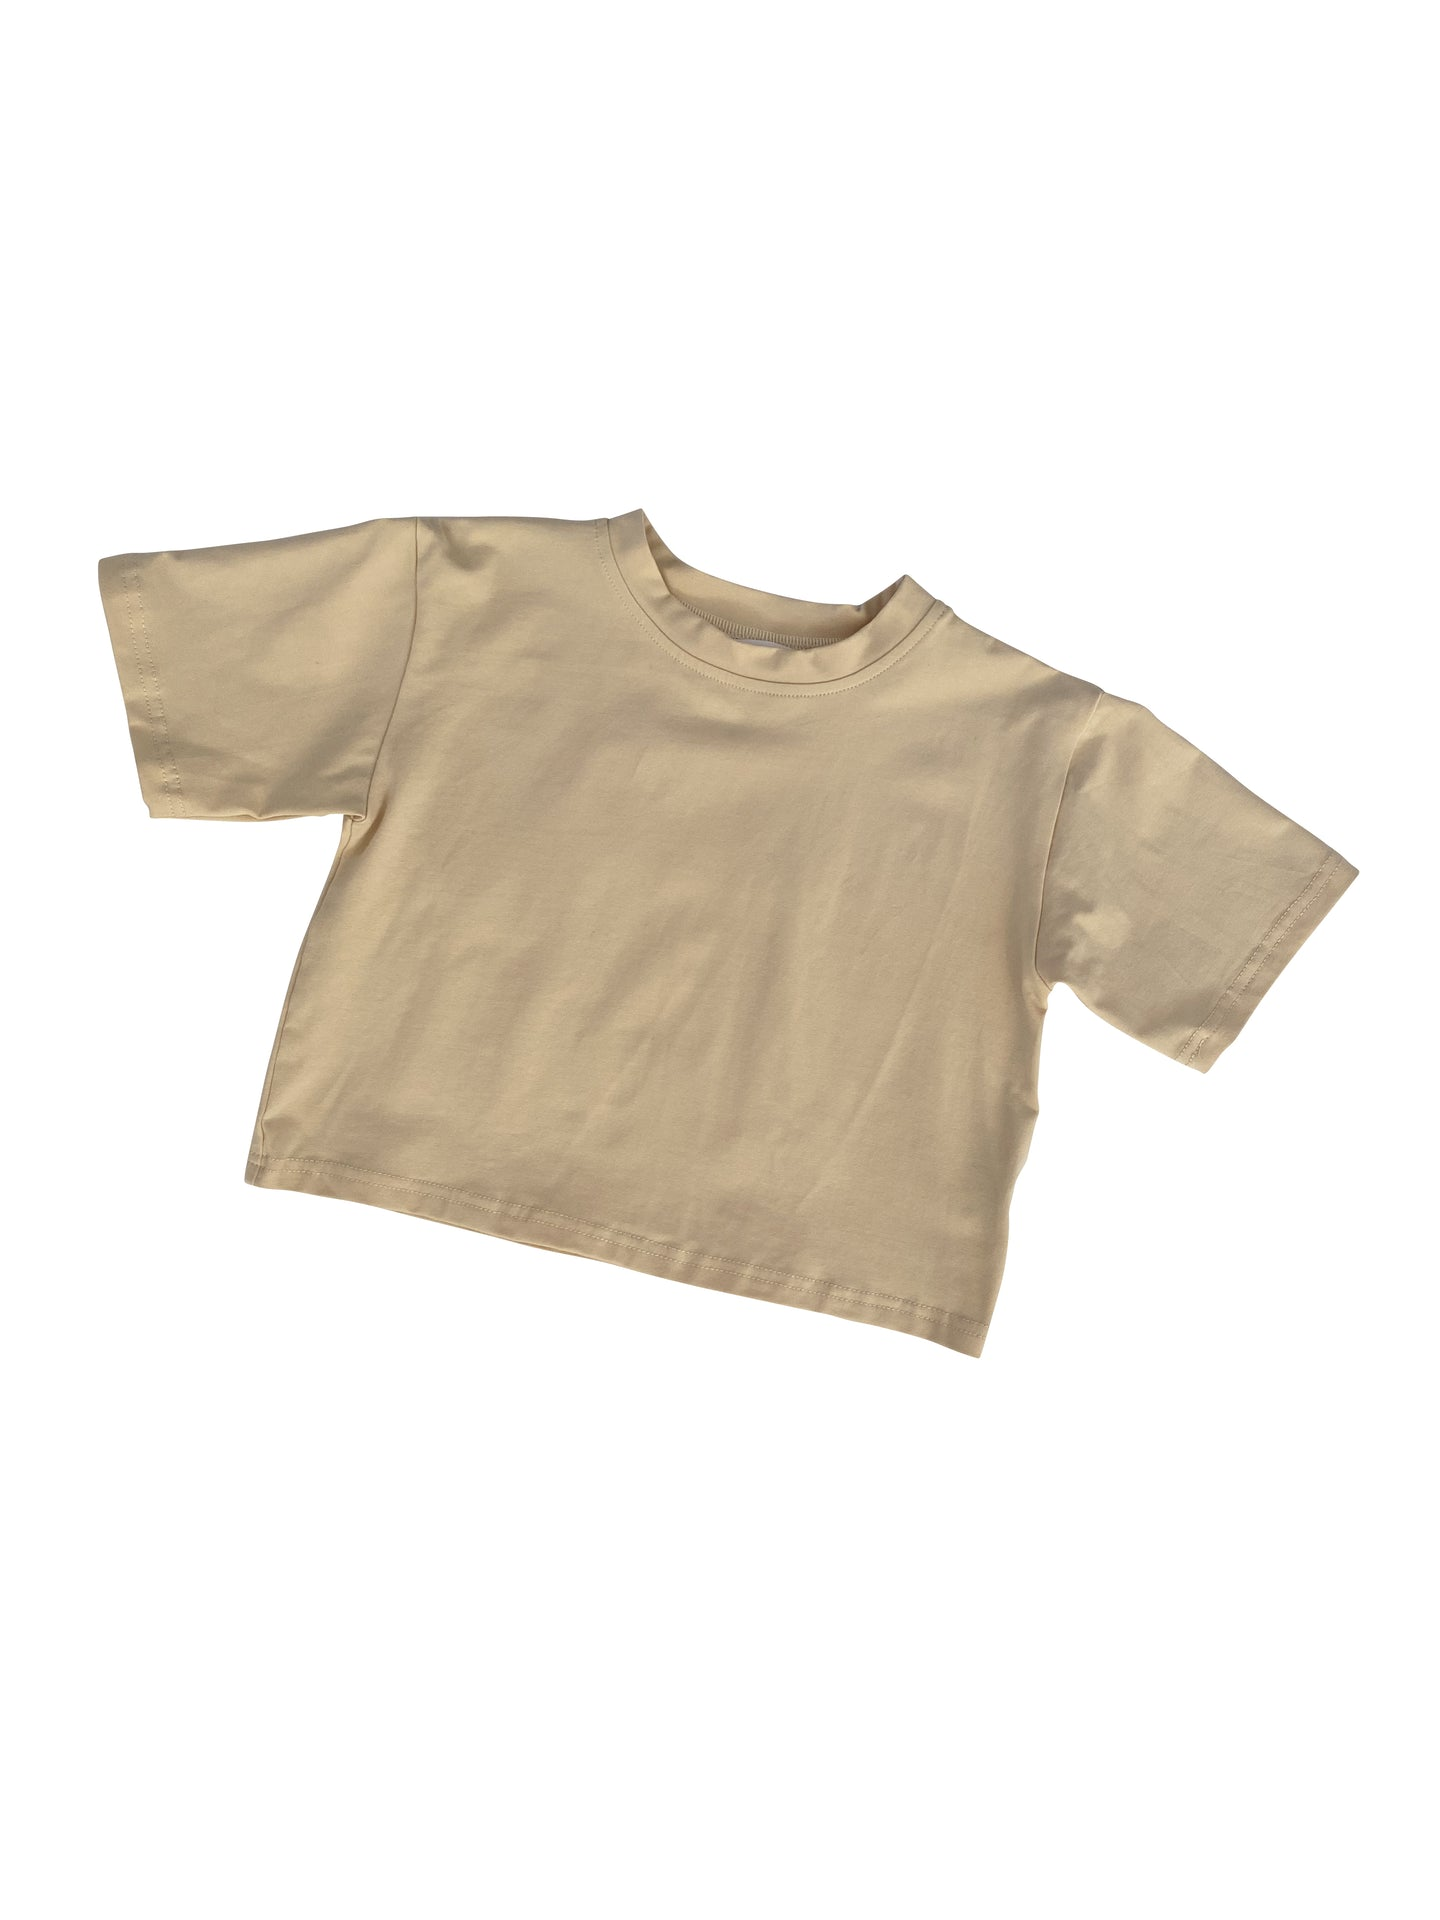 Roo Oversized Tee Biscuit - Little Indahs